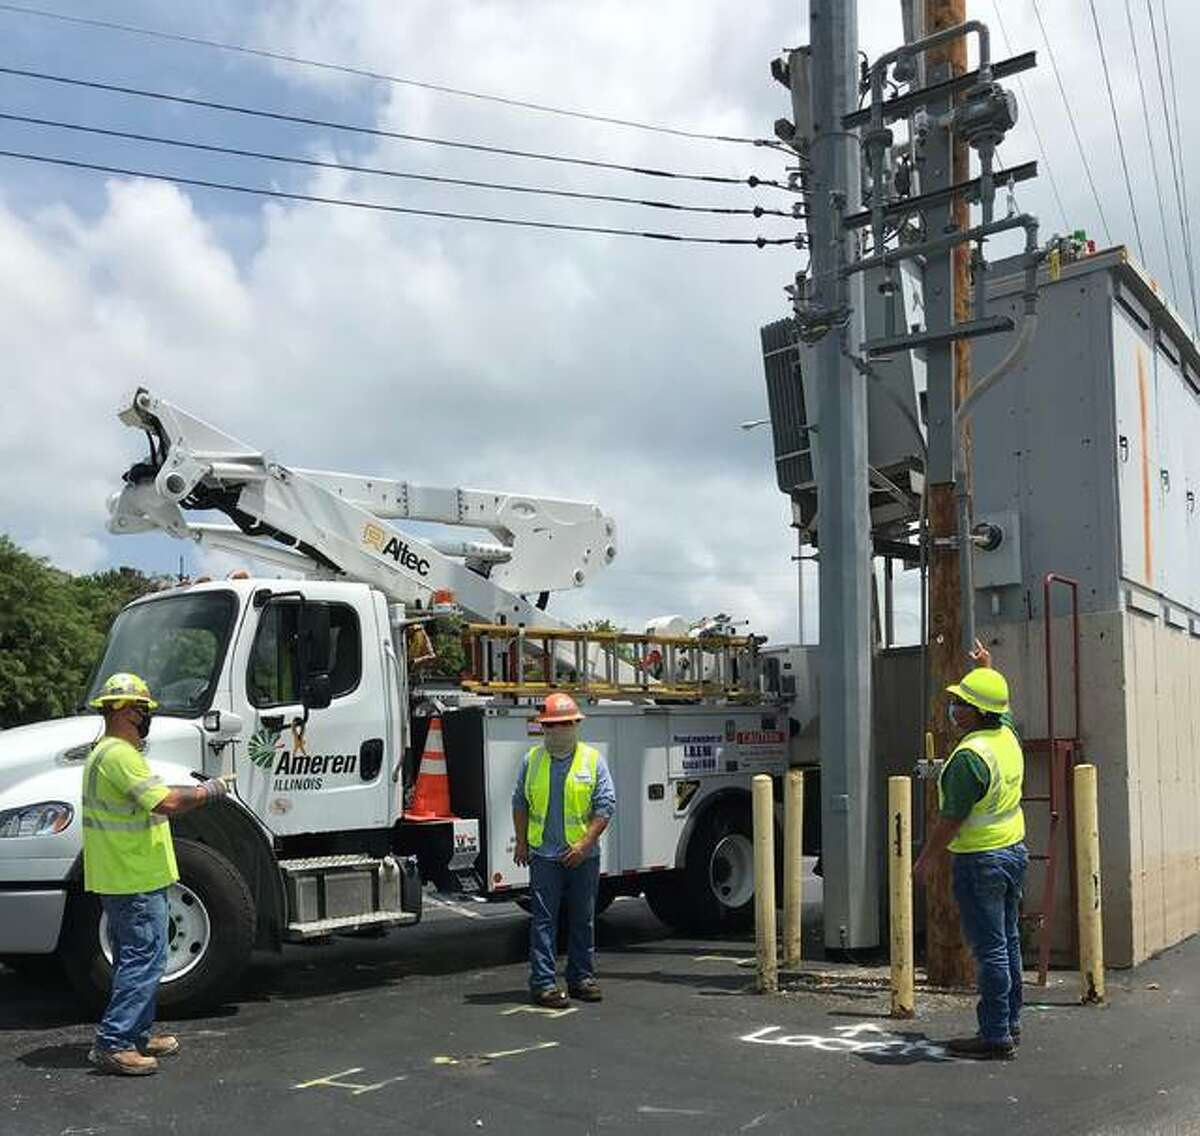 Ameren workers are headed to Louisiana to help in hurricane reovery.